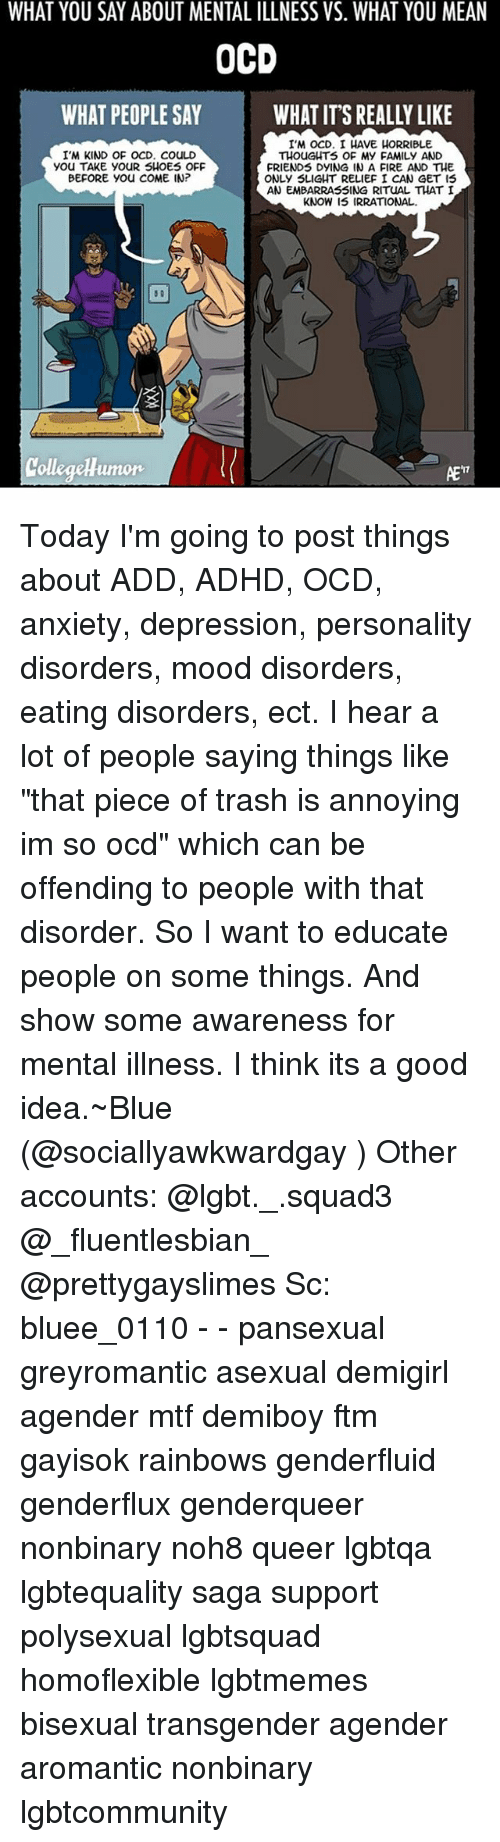 """Memes, 🤖, and Idea: WHAT YOU SAY ABOUT MENTAL ILLNESS VS. WHAT YOU MEAN  OCD  WHAT PEOPLE SAY  WHAT ITS REALLY LIKE  I'M ocD. I HAVE HORRIBLE  I'M KIND OF OCD. COULD  THOUGHTS OF My FAMILy AND  you TAKE YOUR SHOES OFF  FRIENDS DYING IN A FIRE AND THE  BEFORE you COME IN?  ONLy SLIGHT RELIEF I CAN GET IS  AN EMBARRASSING RITUAL THAT I  KNOW IS IRRATIONAL.  AE'7 Today I'm going to post things about ADD, ADHD, OCD, anxiety, depression, personality disorders, mood disorders, eating disorders, ect. I hear a lot of people saying things like """"that piece of trash is annoying im so ocd"""" which can be offending to people with that disorder. So I want to educate people on some things. And show some awareness for mental illness. I think its a good idea.~Blue (@sociallyawkwardgay ) Other accounts: @lgbt._.squad3 @_fluentlesbian_ @prettygayslimes Sc: bluee_0110 - - pansexual greyromantic asexual demigirl agender mtf demiboy ftm gayisok rainbows genderfluid genderflux genderqueer nonbinary noh8 queer lgbtqa lgbtequality saga support polysexual lgbtsquad homoflexible lgbtmemes bisexual transgender agender aromantic nonbinary lgbtcommunity"""